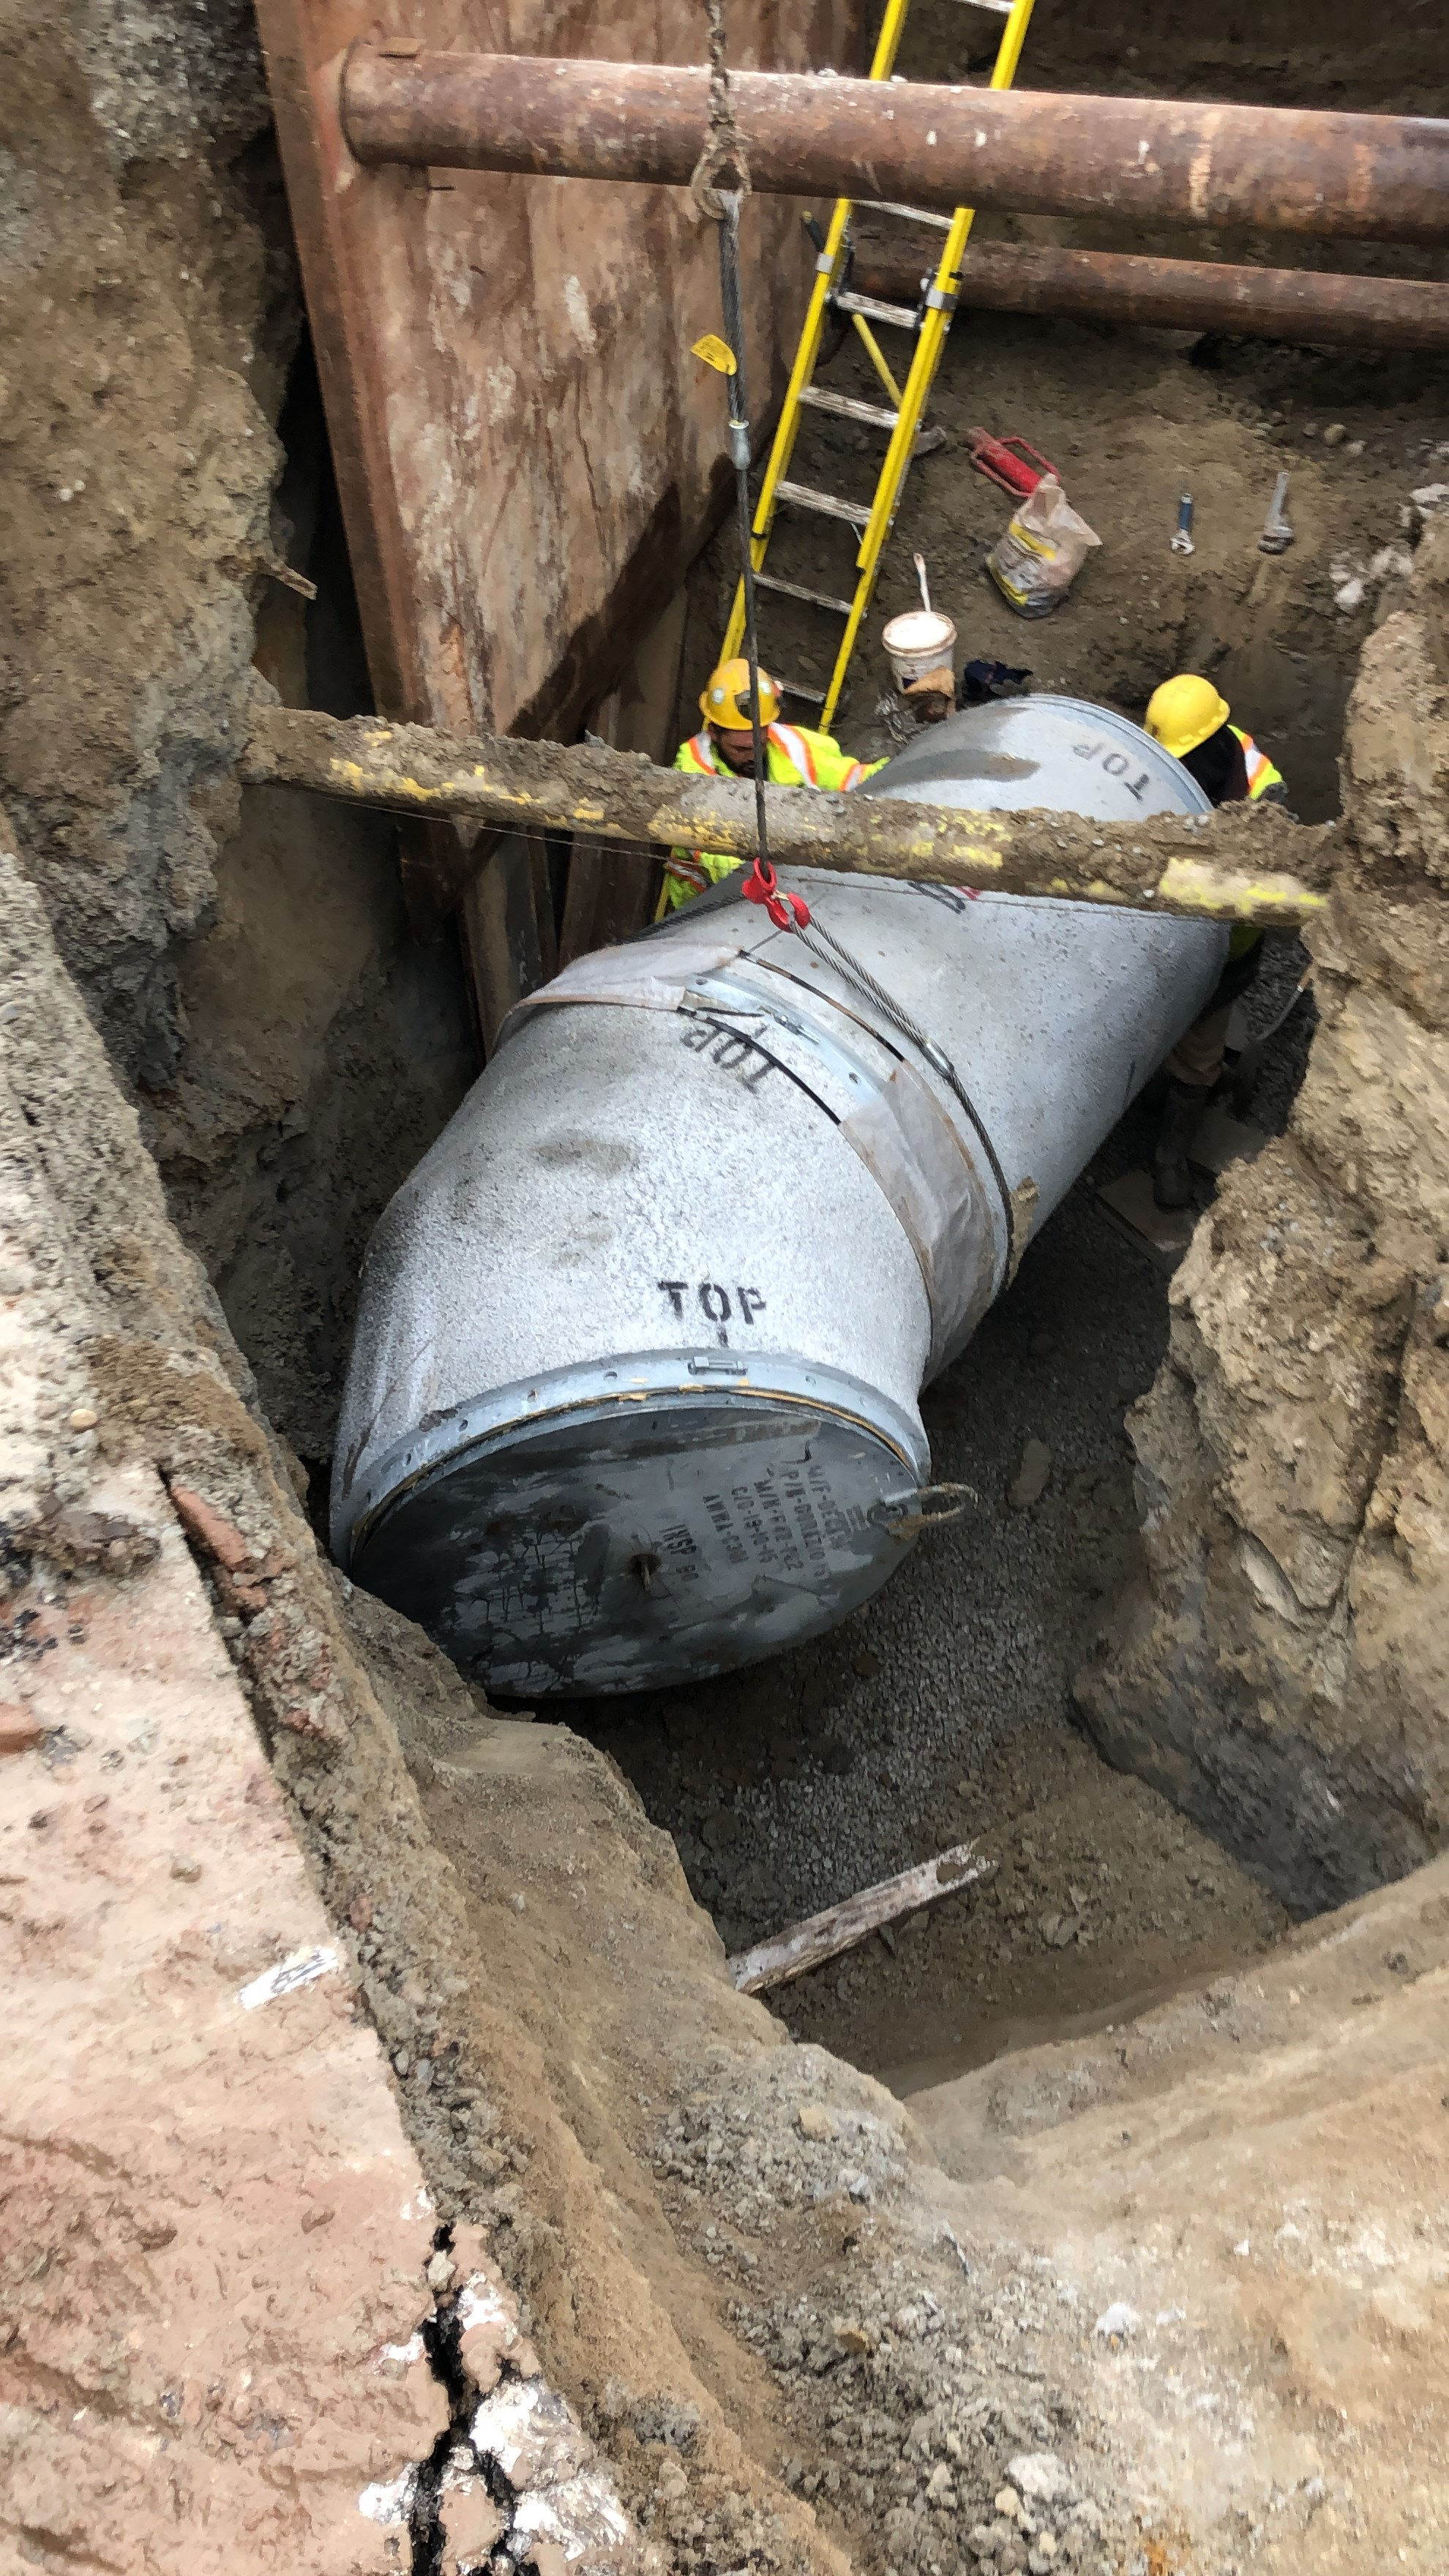 An image of a large water pipe buried in the ground